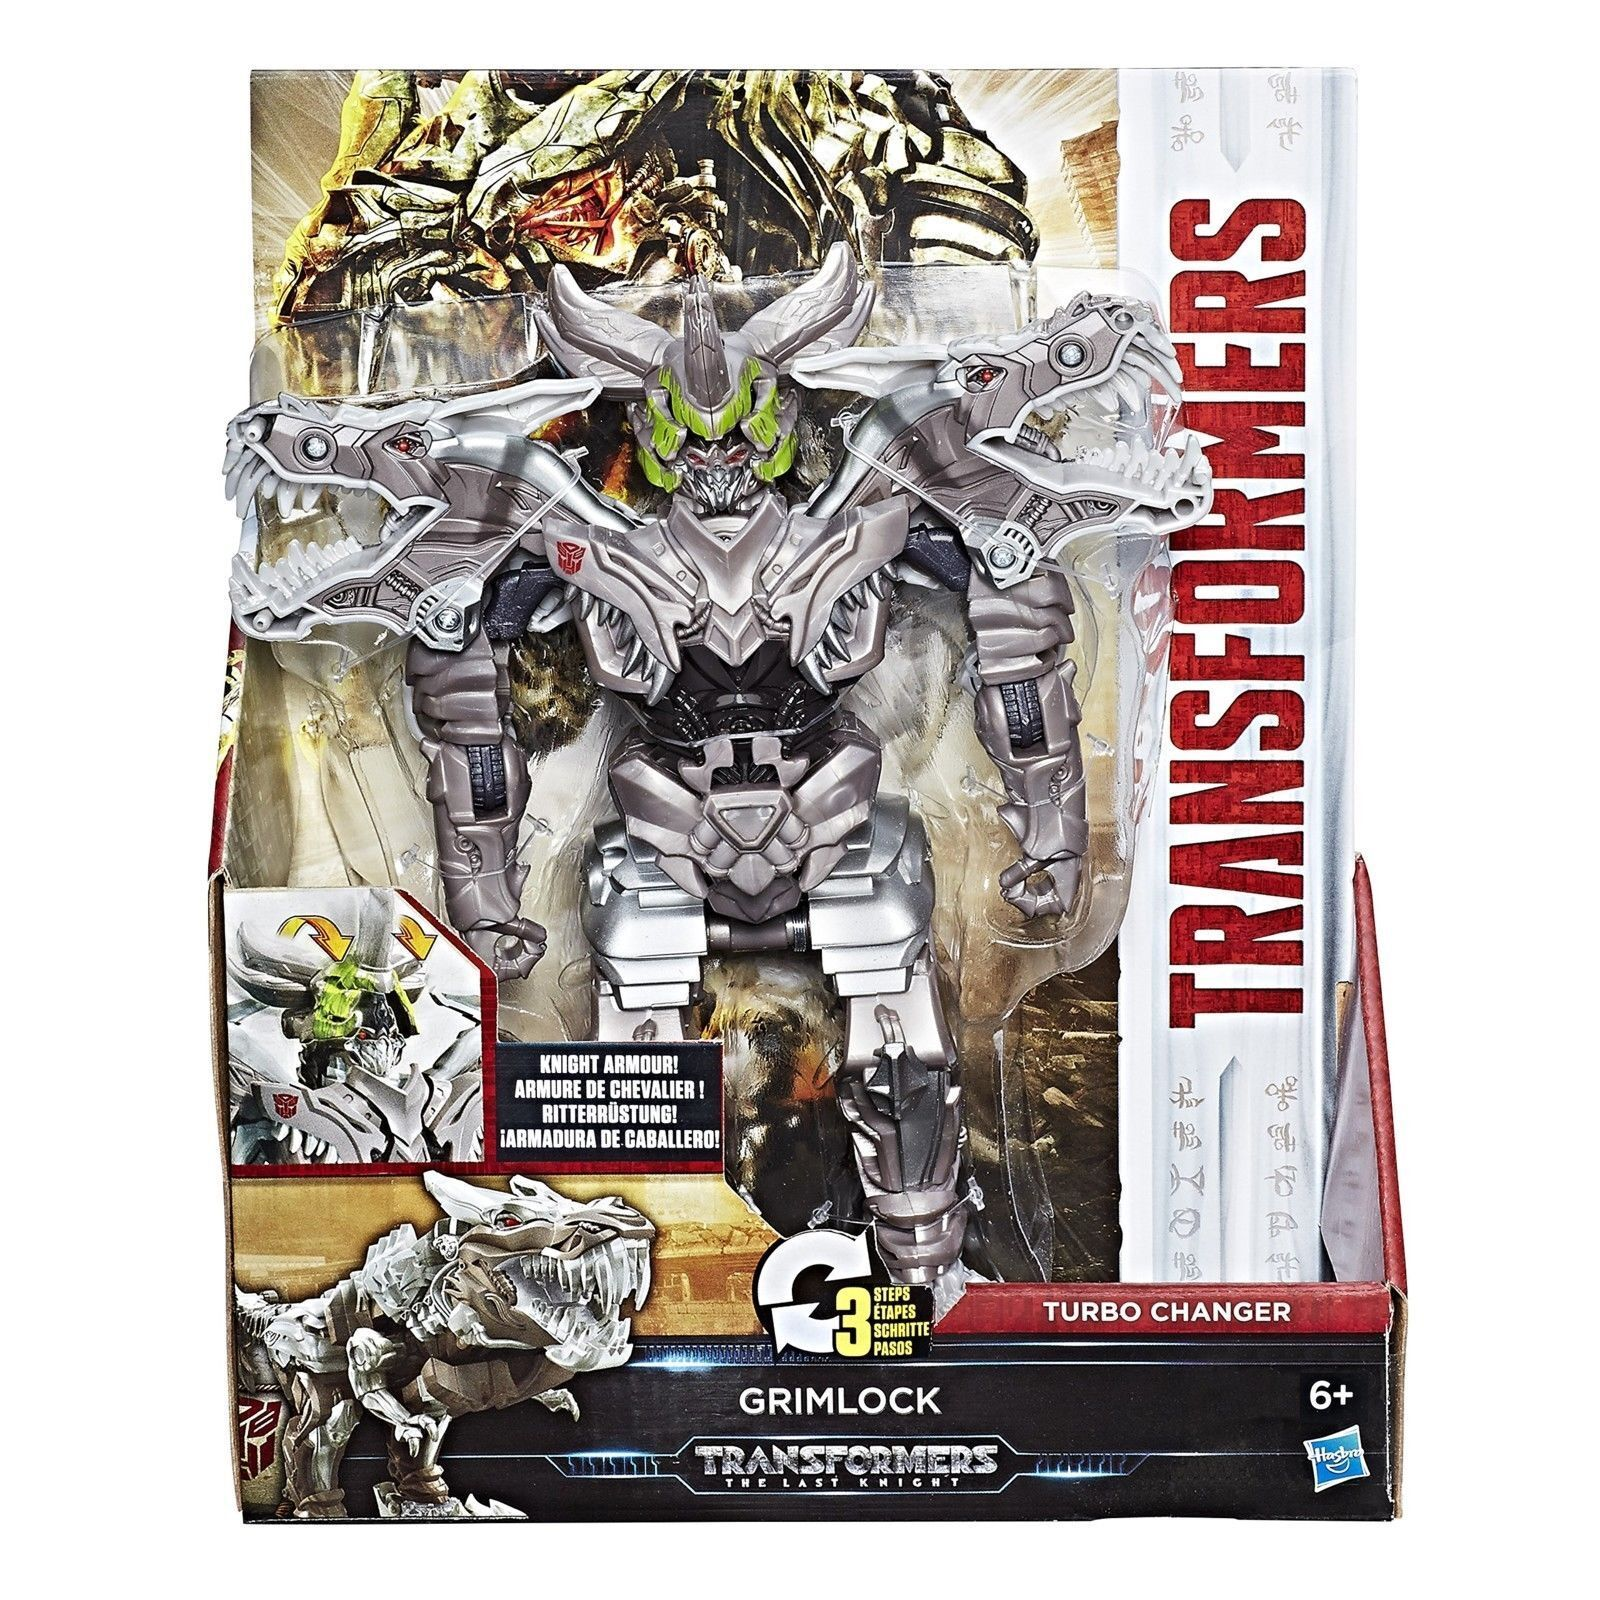 NEW Transformers The Last Knight Knight Knight Armour Turbo Changer Grimlock Dinosaur Trex 753172